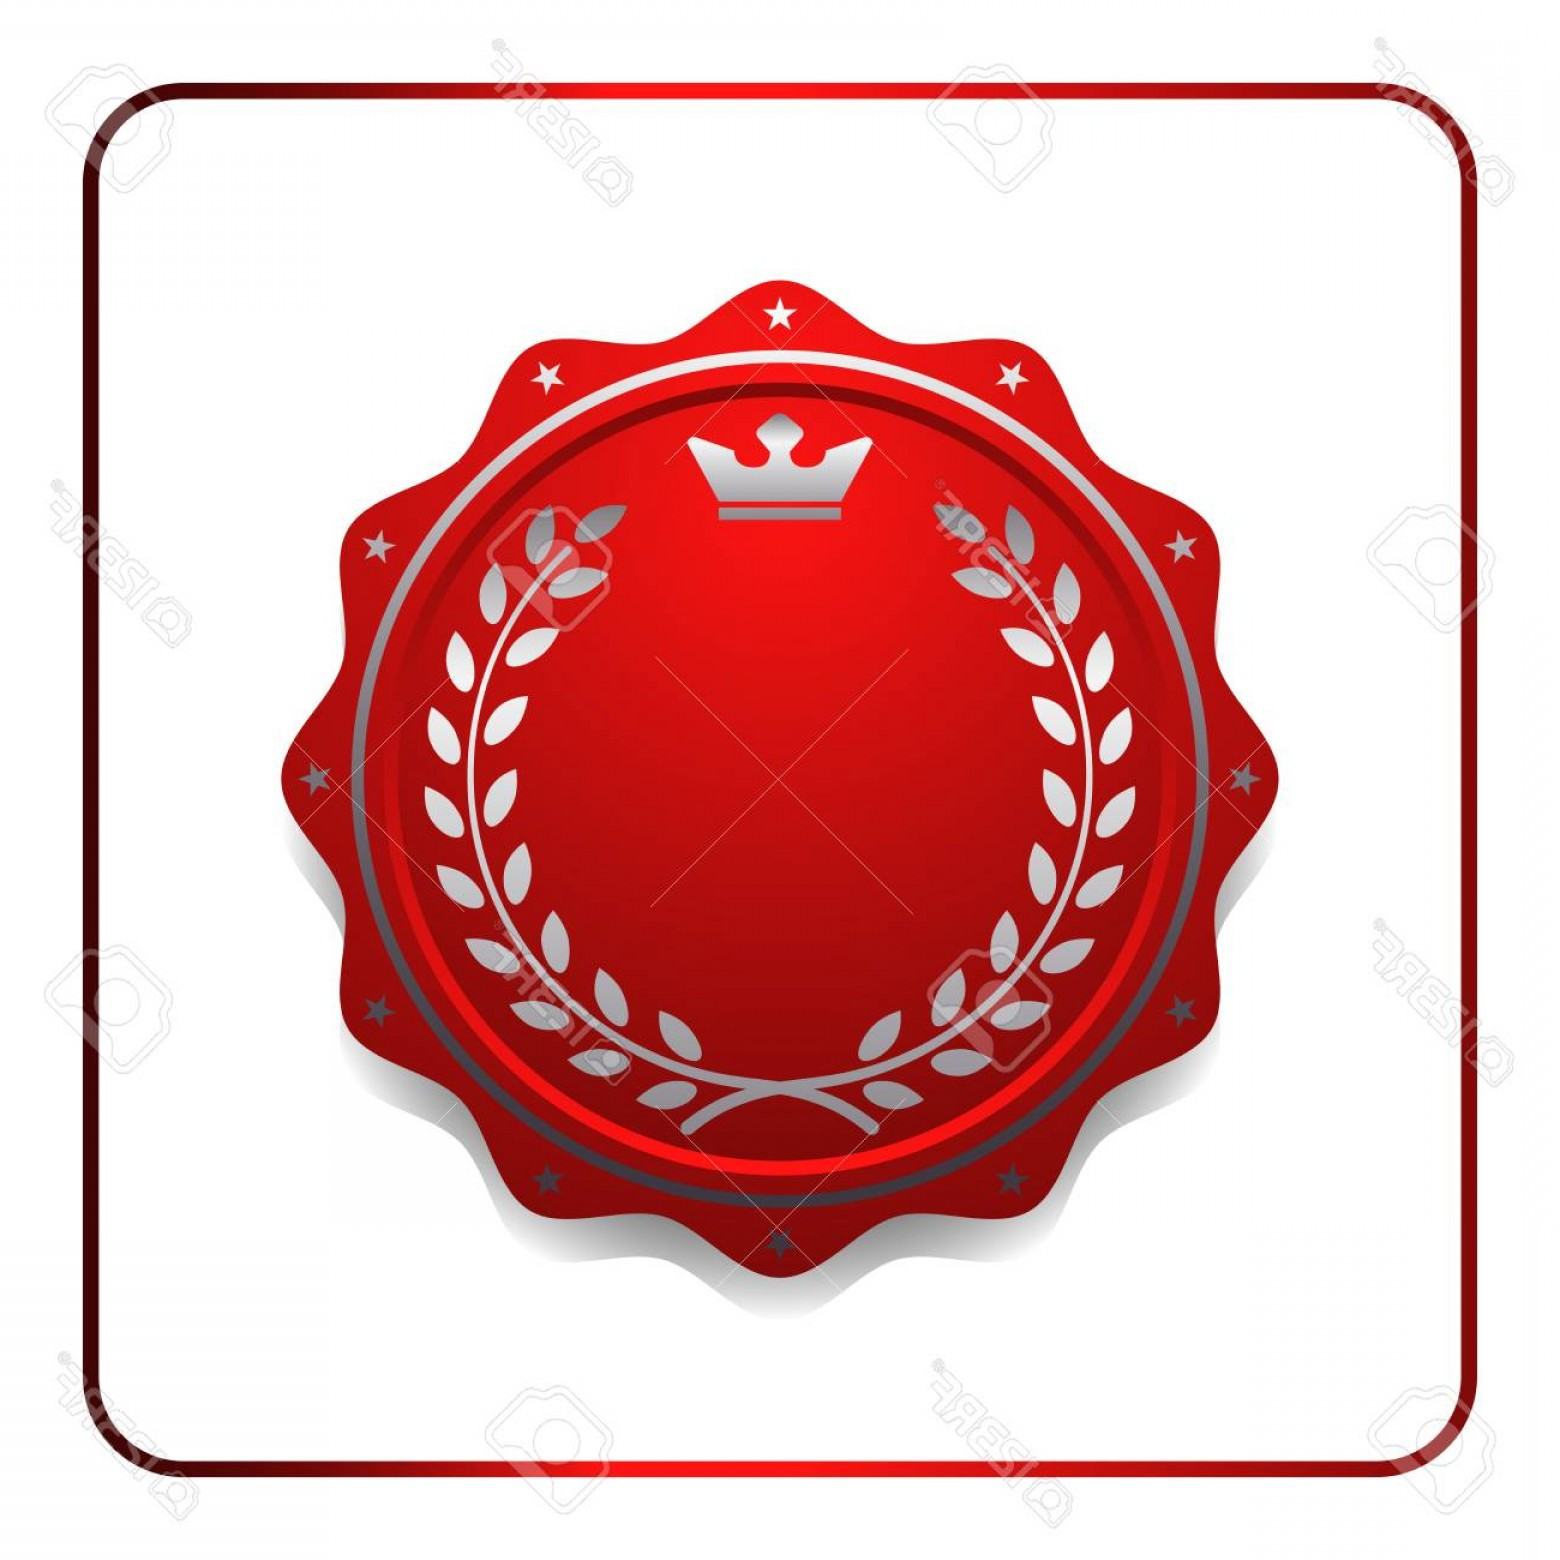 1560x1560 Photostock Vector Seal Award Red Icon Blank Medal With Laurel